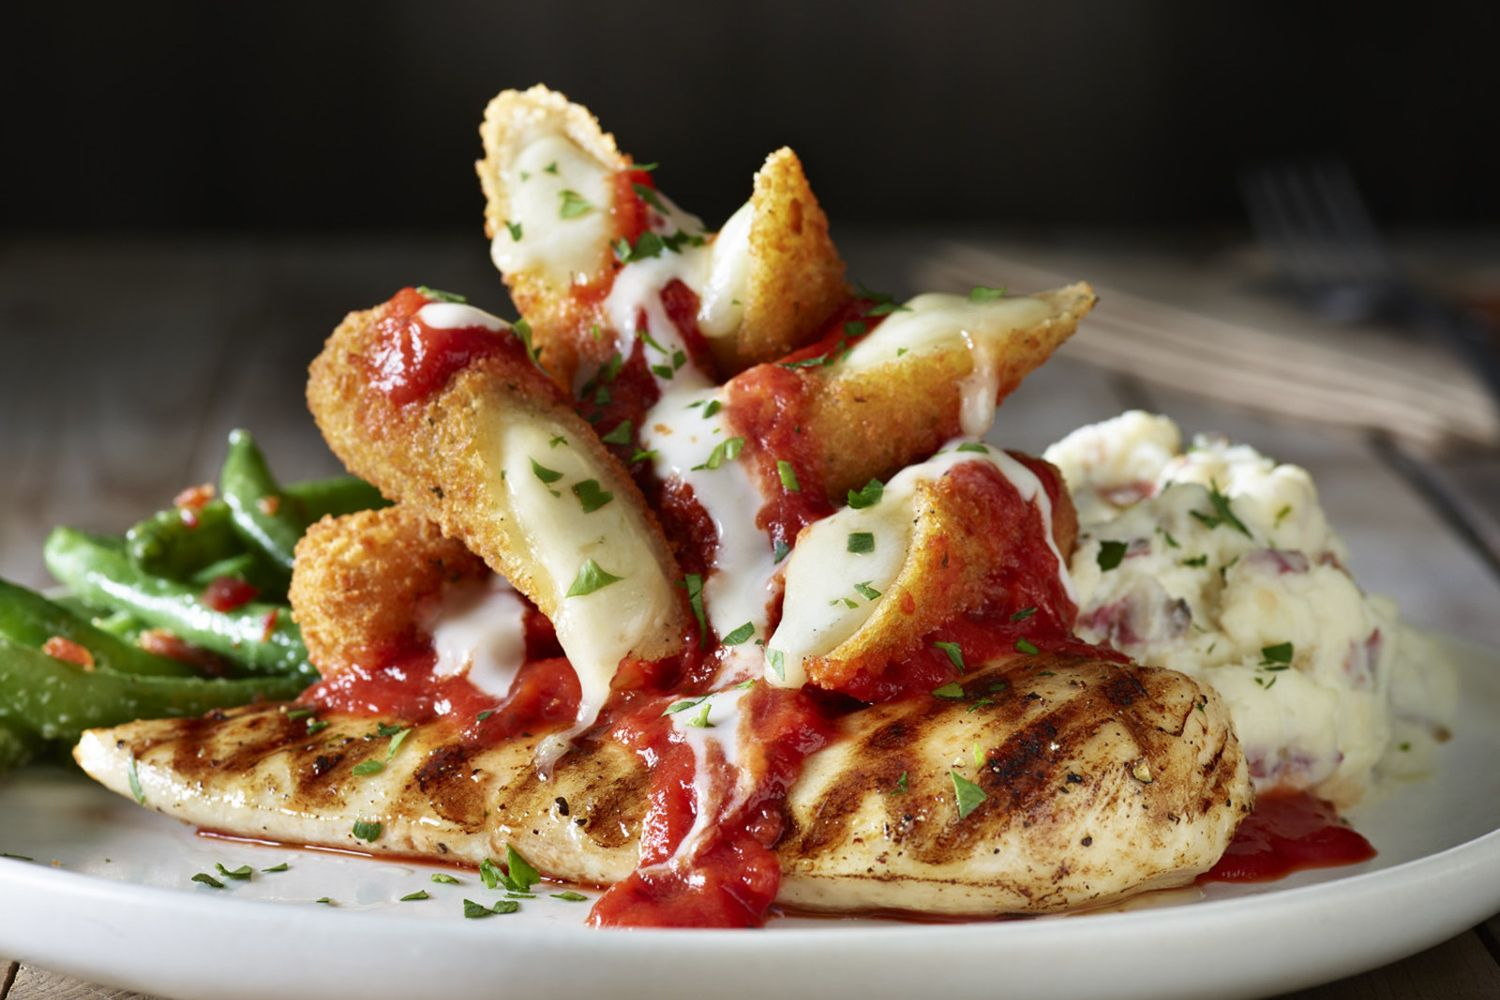 Applebee's Introduces New Topped & Loaded Menu Starting at Only $10.99